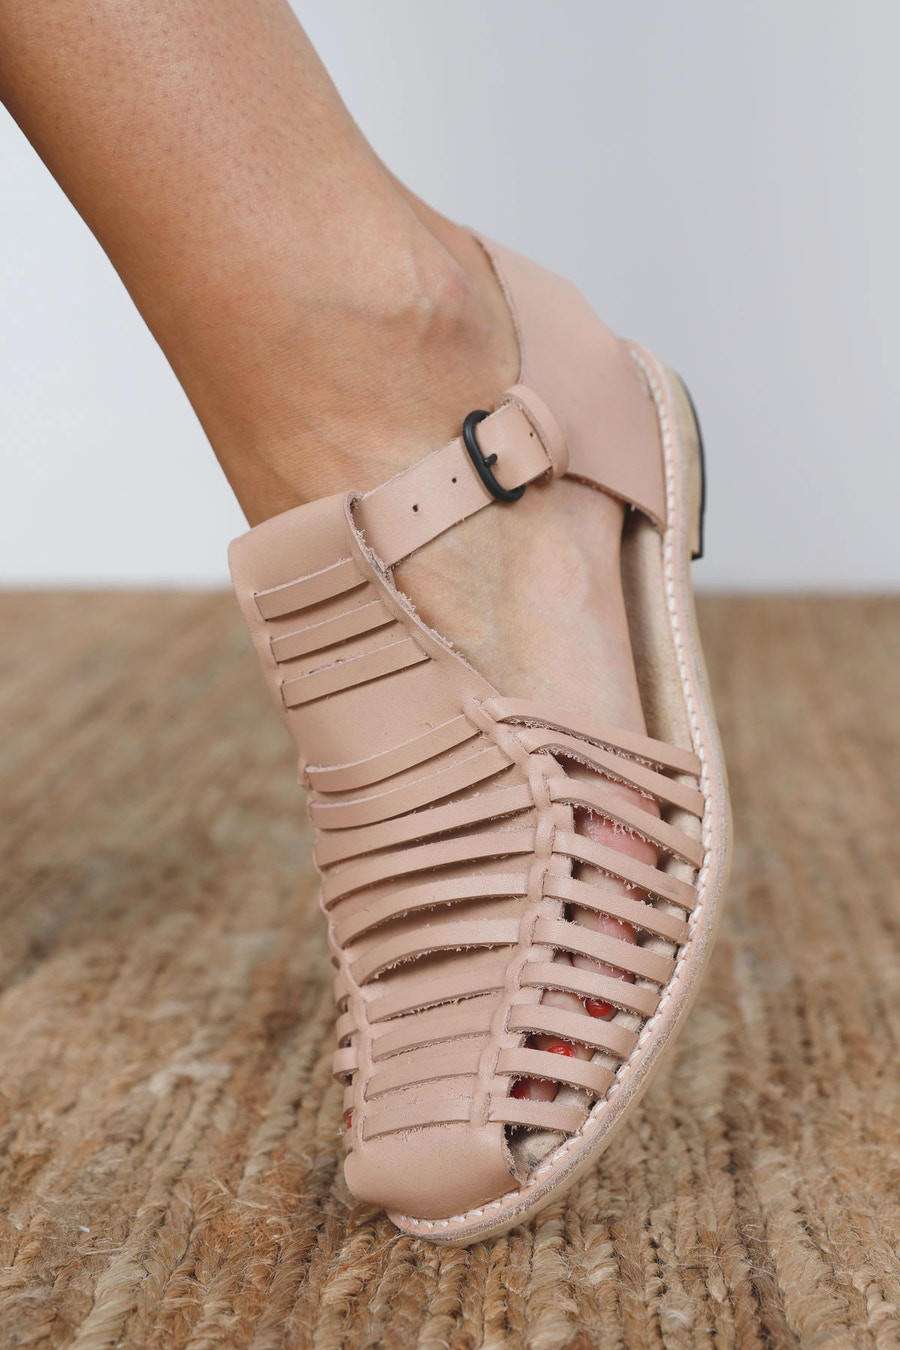 Edit buckle Astrid Sandal The Shoe Camaraderie Leather By The Fabric Store Cass Pant